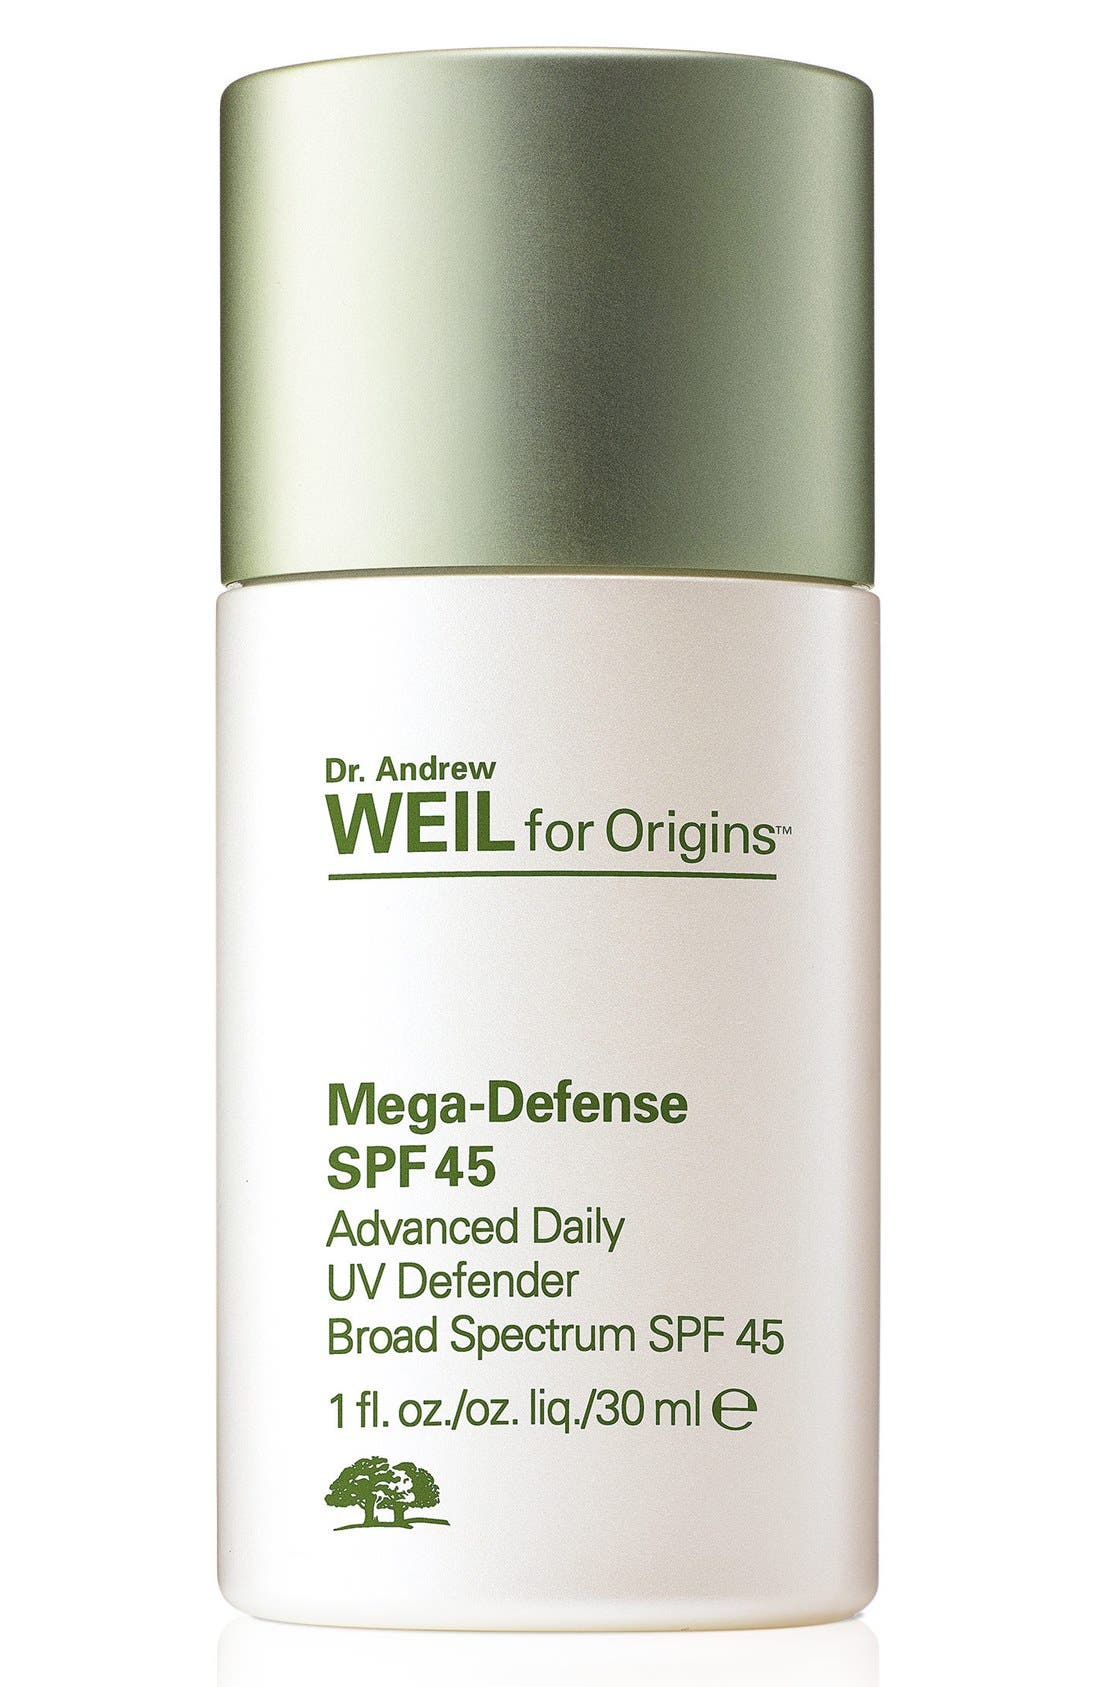 Dr. Andrew Weil for Origins<sup>™</sup> Mega-Defense Advanced Daily UV Defender SPF 45,                             Main thumbnail 1, color,                             000